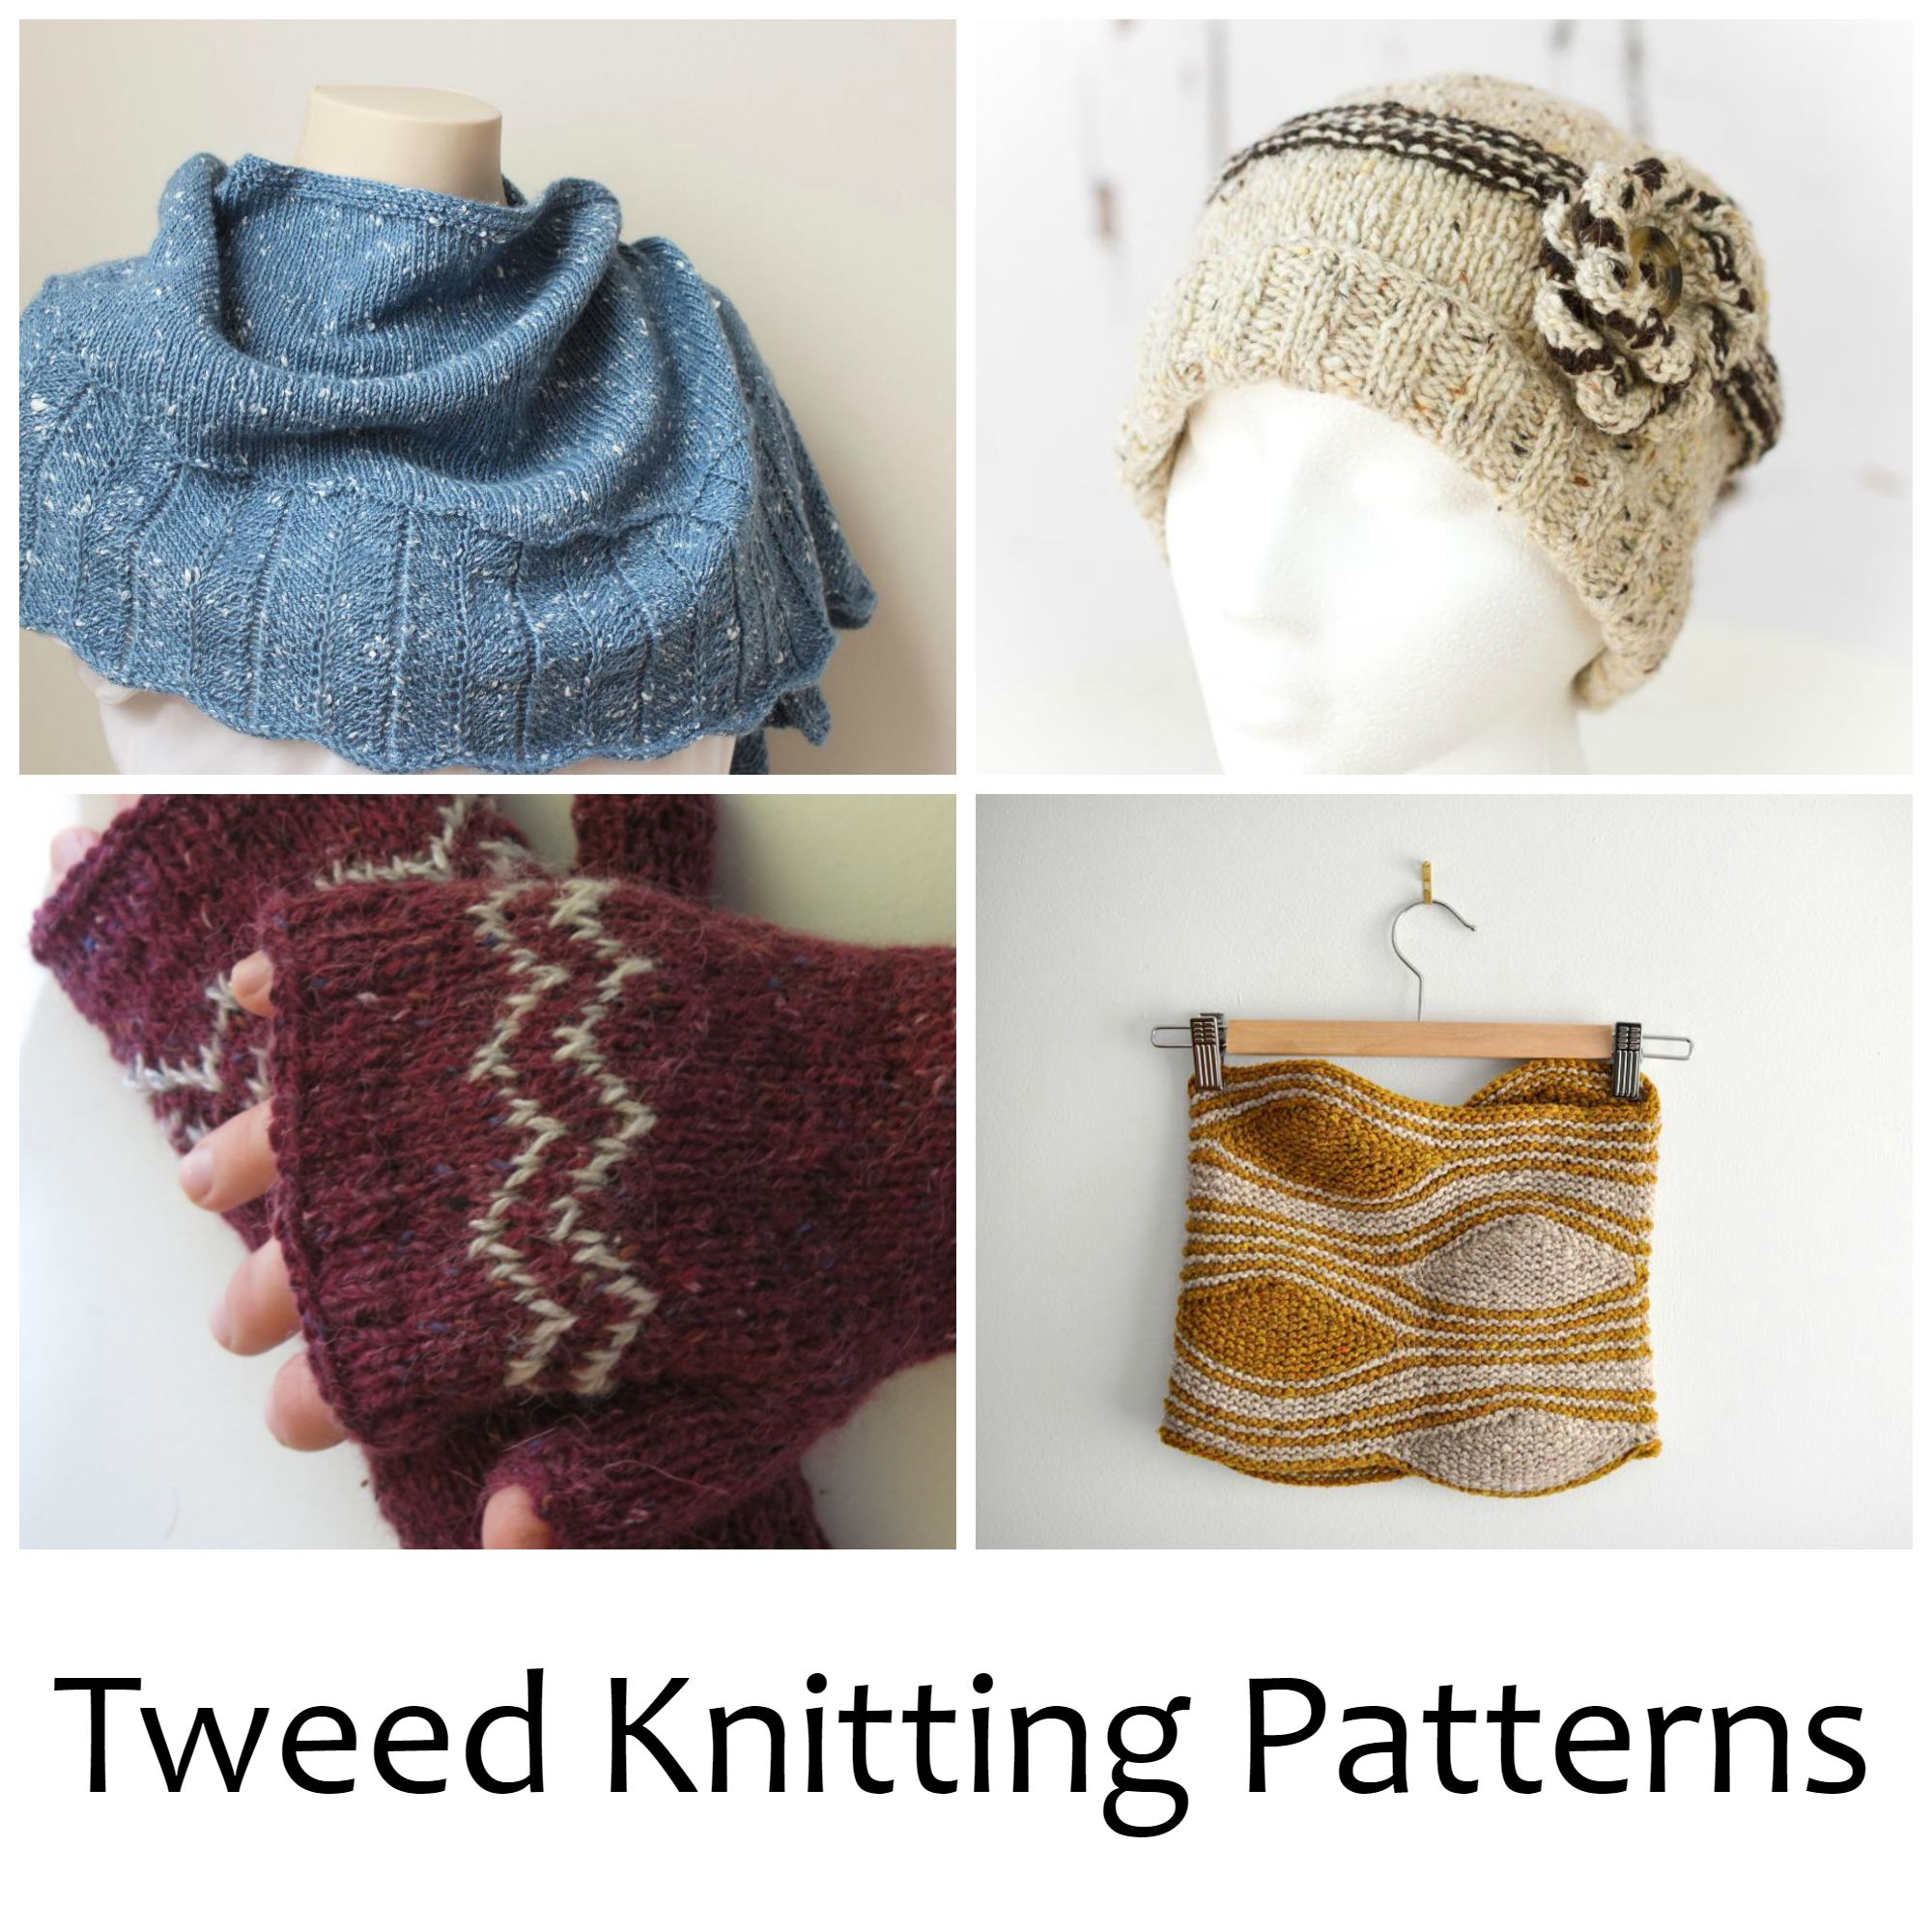 Tweed Knitting Patterns